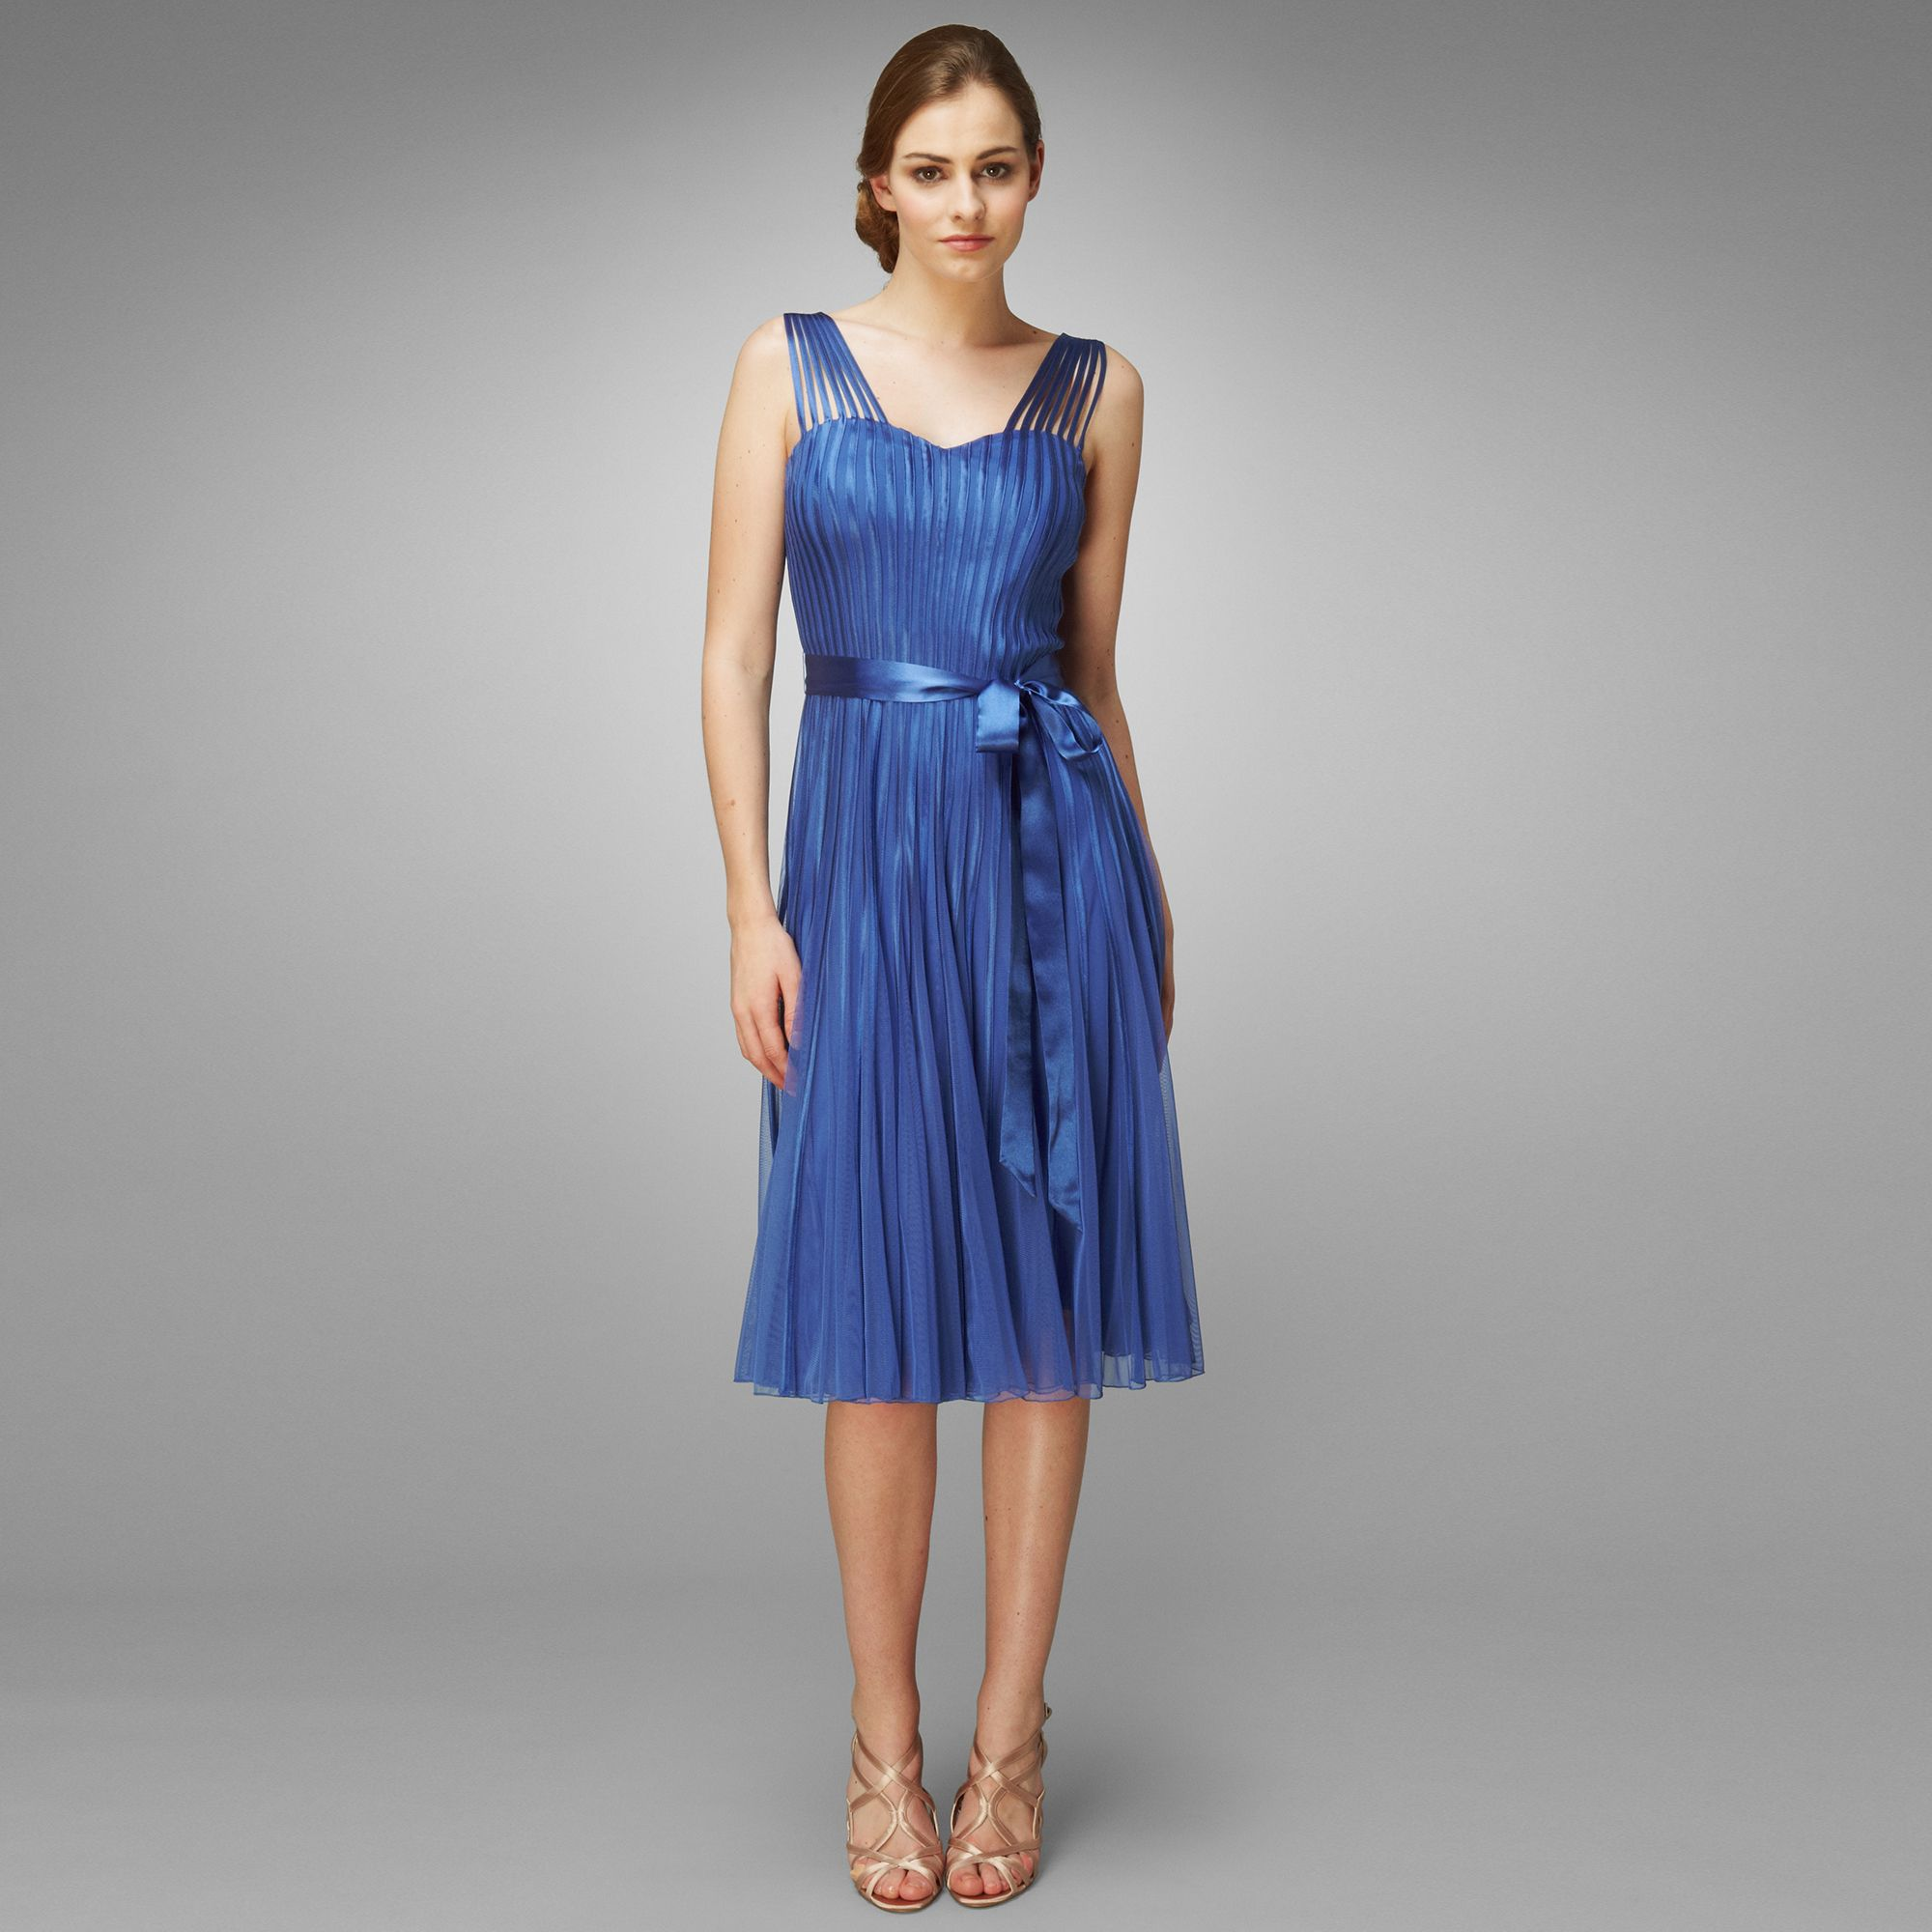 Bridesmaid dress stefana tapework dress in cornflower by phase gorgeous blue bridesmaid dress designed by phase 8 and available at debenhams ombrellifo Gallery